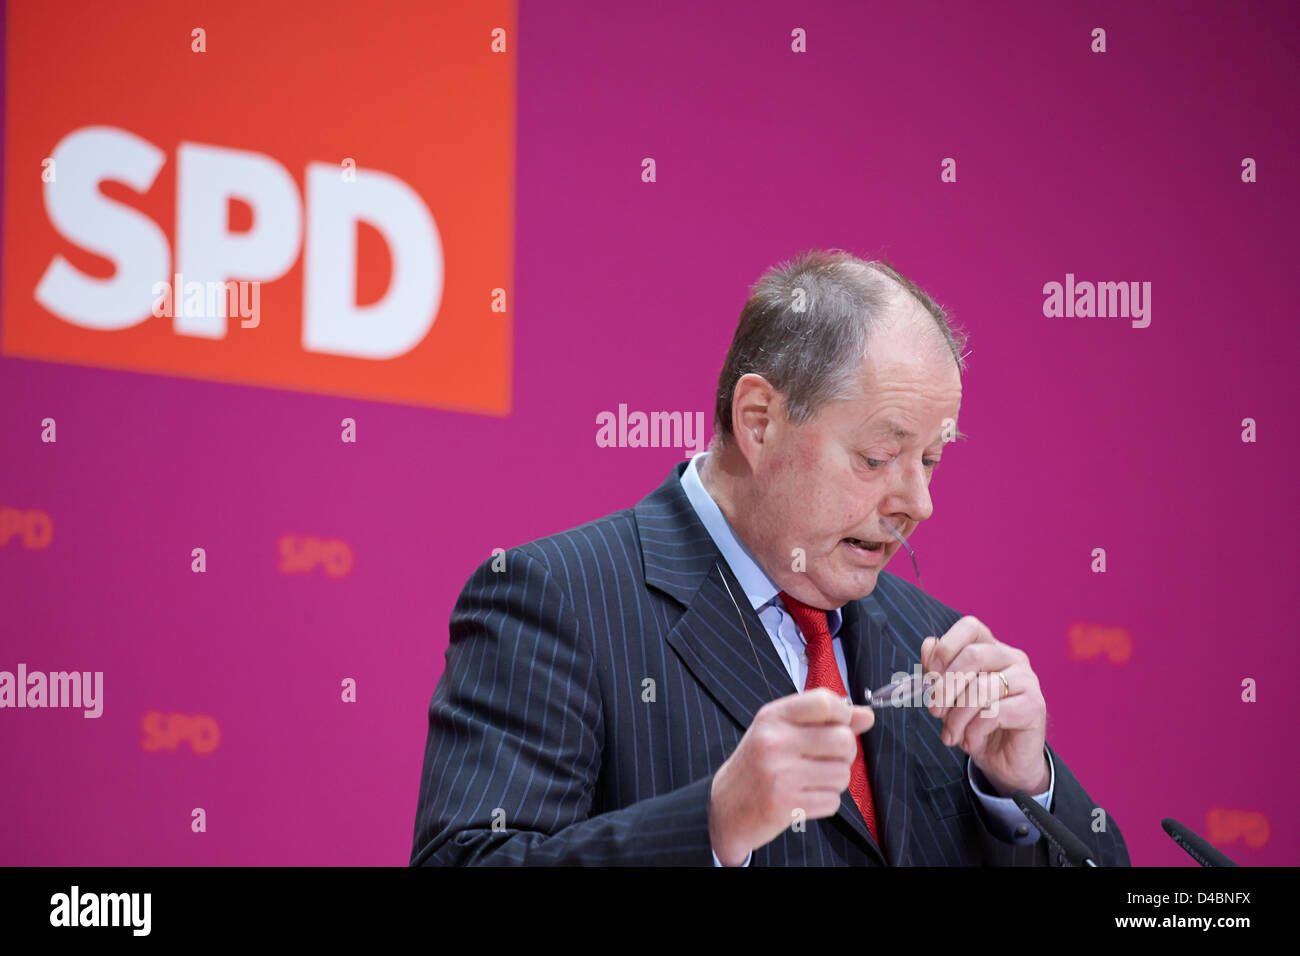 Berlin, Germany. 11th March, 2013. Peer Steinbrueck, Chancellor candidate of SPD, and SPD Chairman, Sigmar Gabriel, - Stock Image